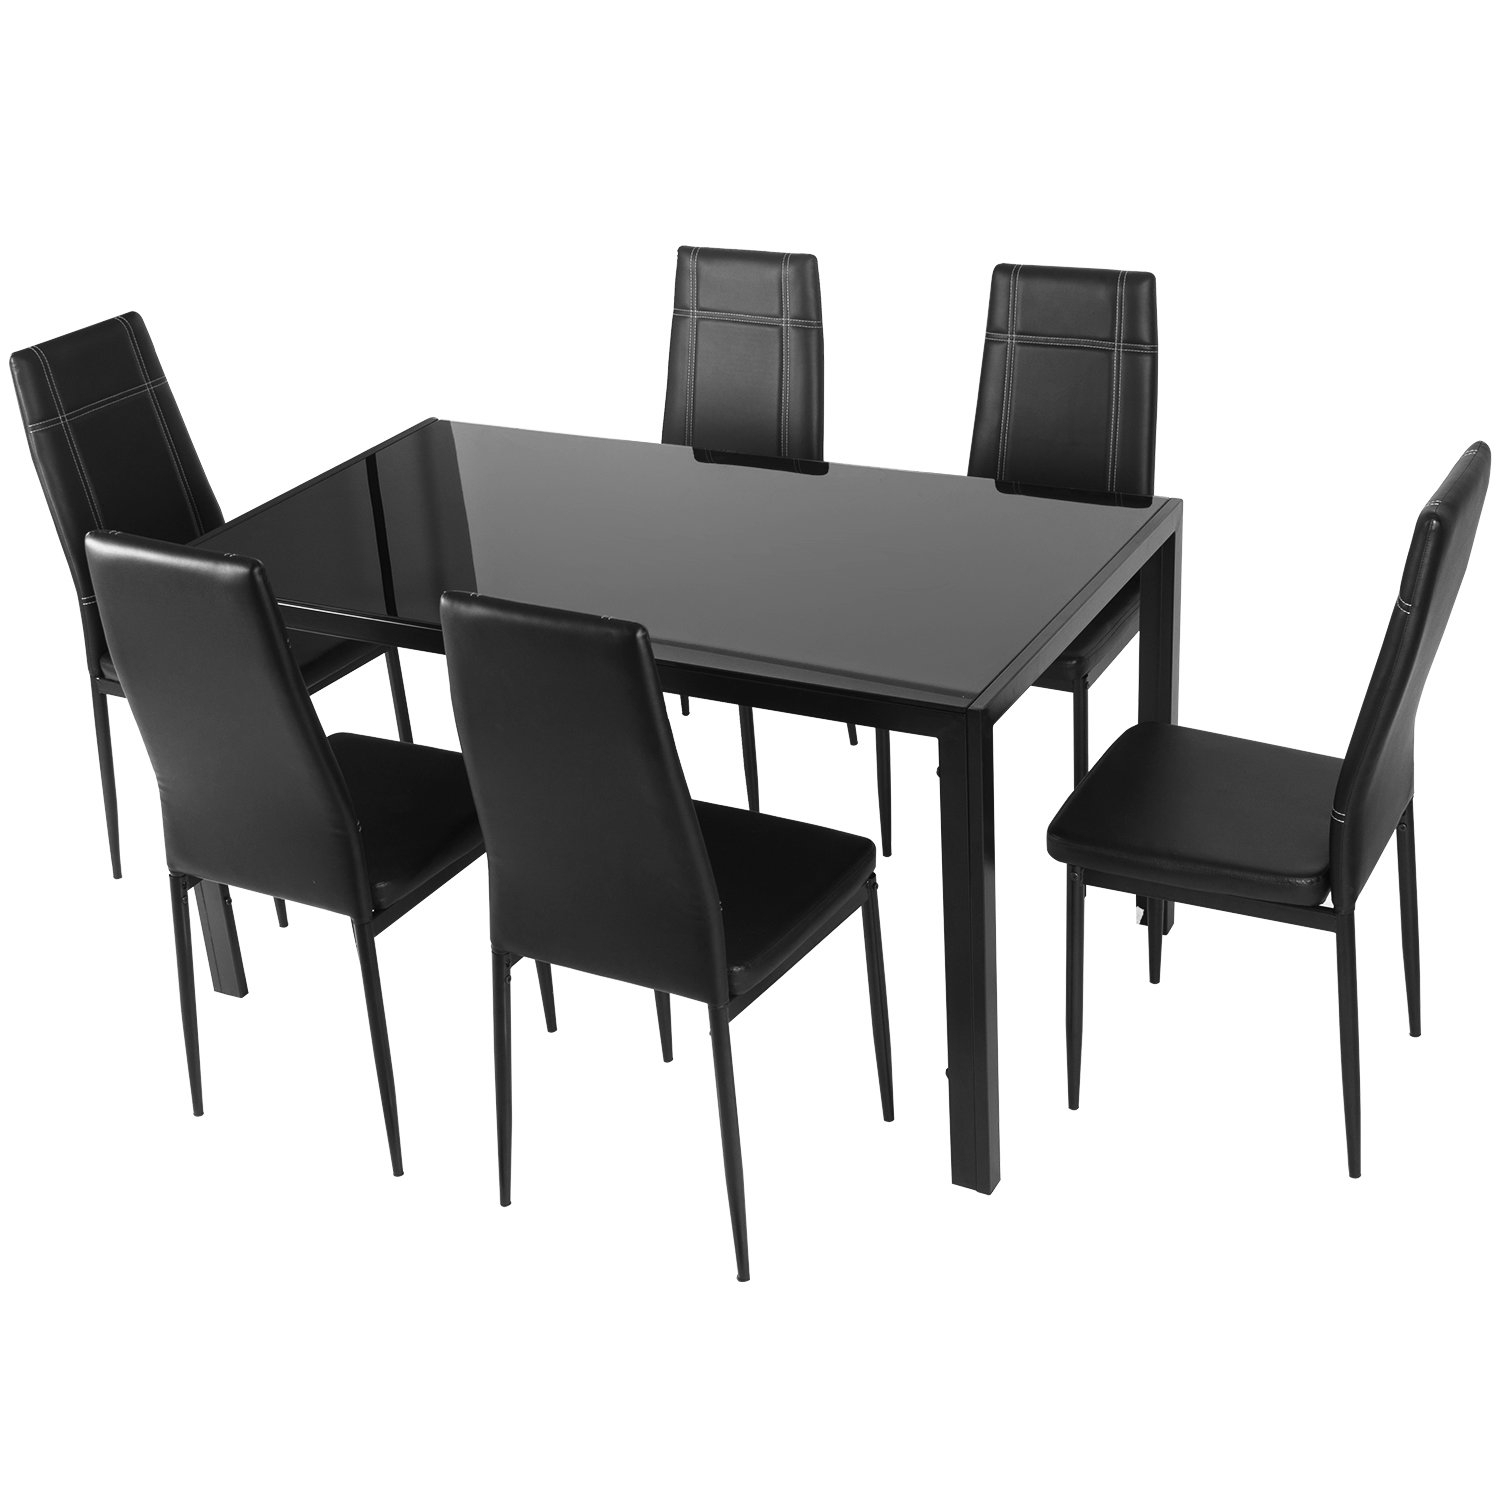 Inspiration about Wayfair Inside Linette 5 Piece Dining Table Sets (#1 of 20)